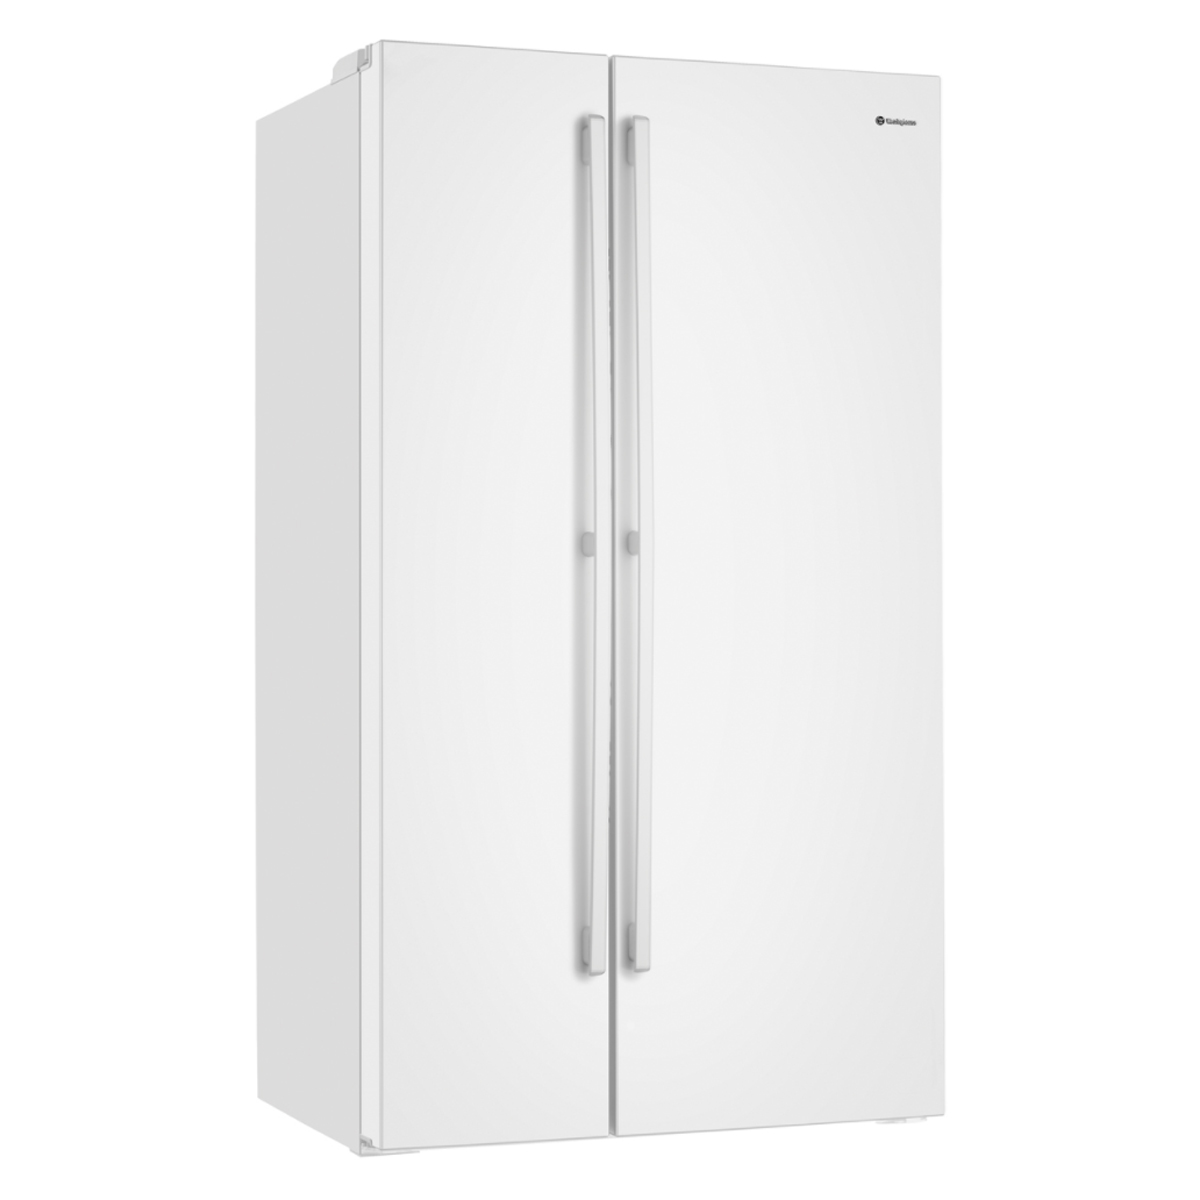 Westinghouse WSE6900WA 690L Side by Side Fridge